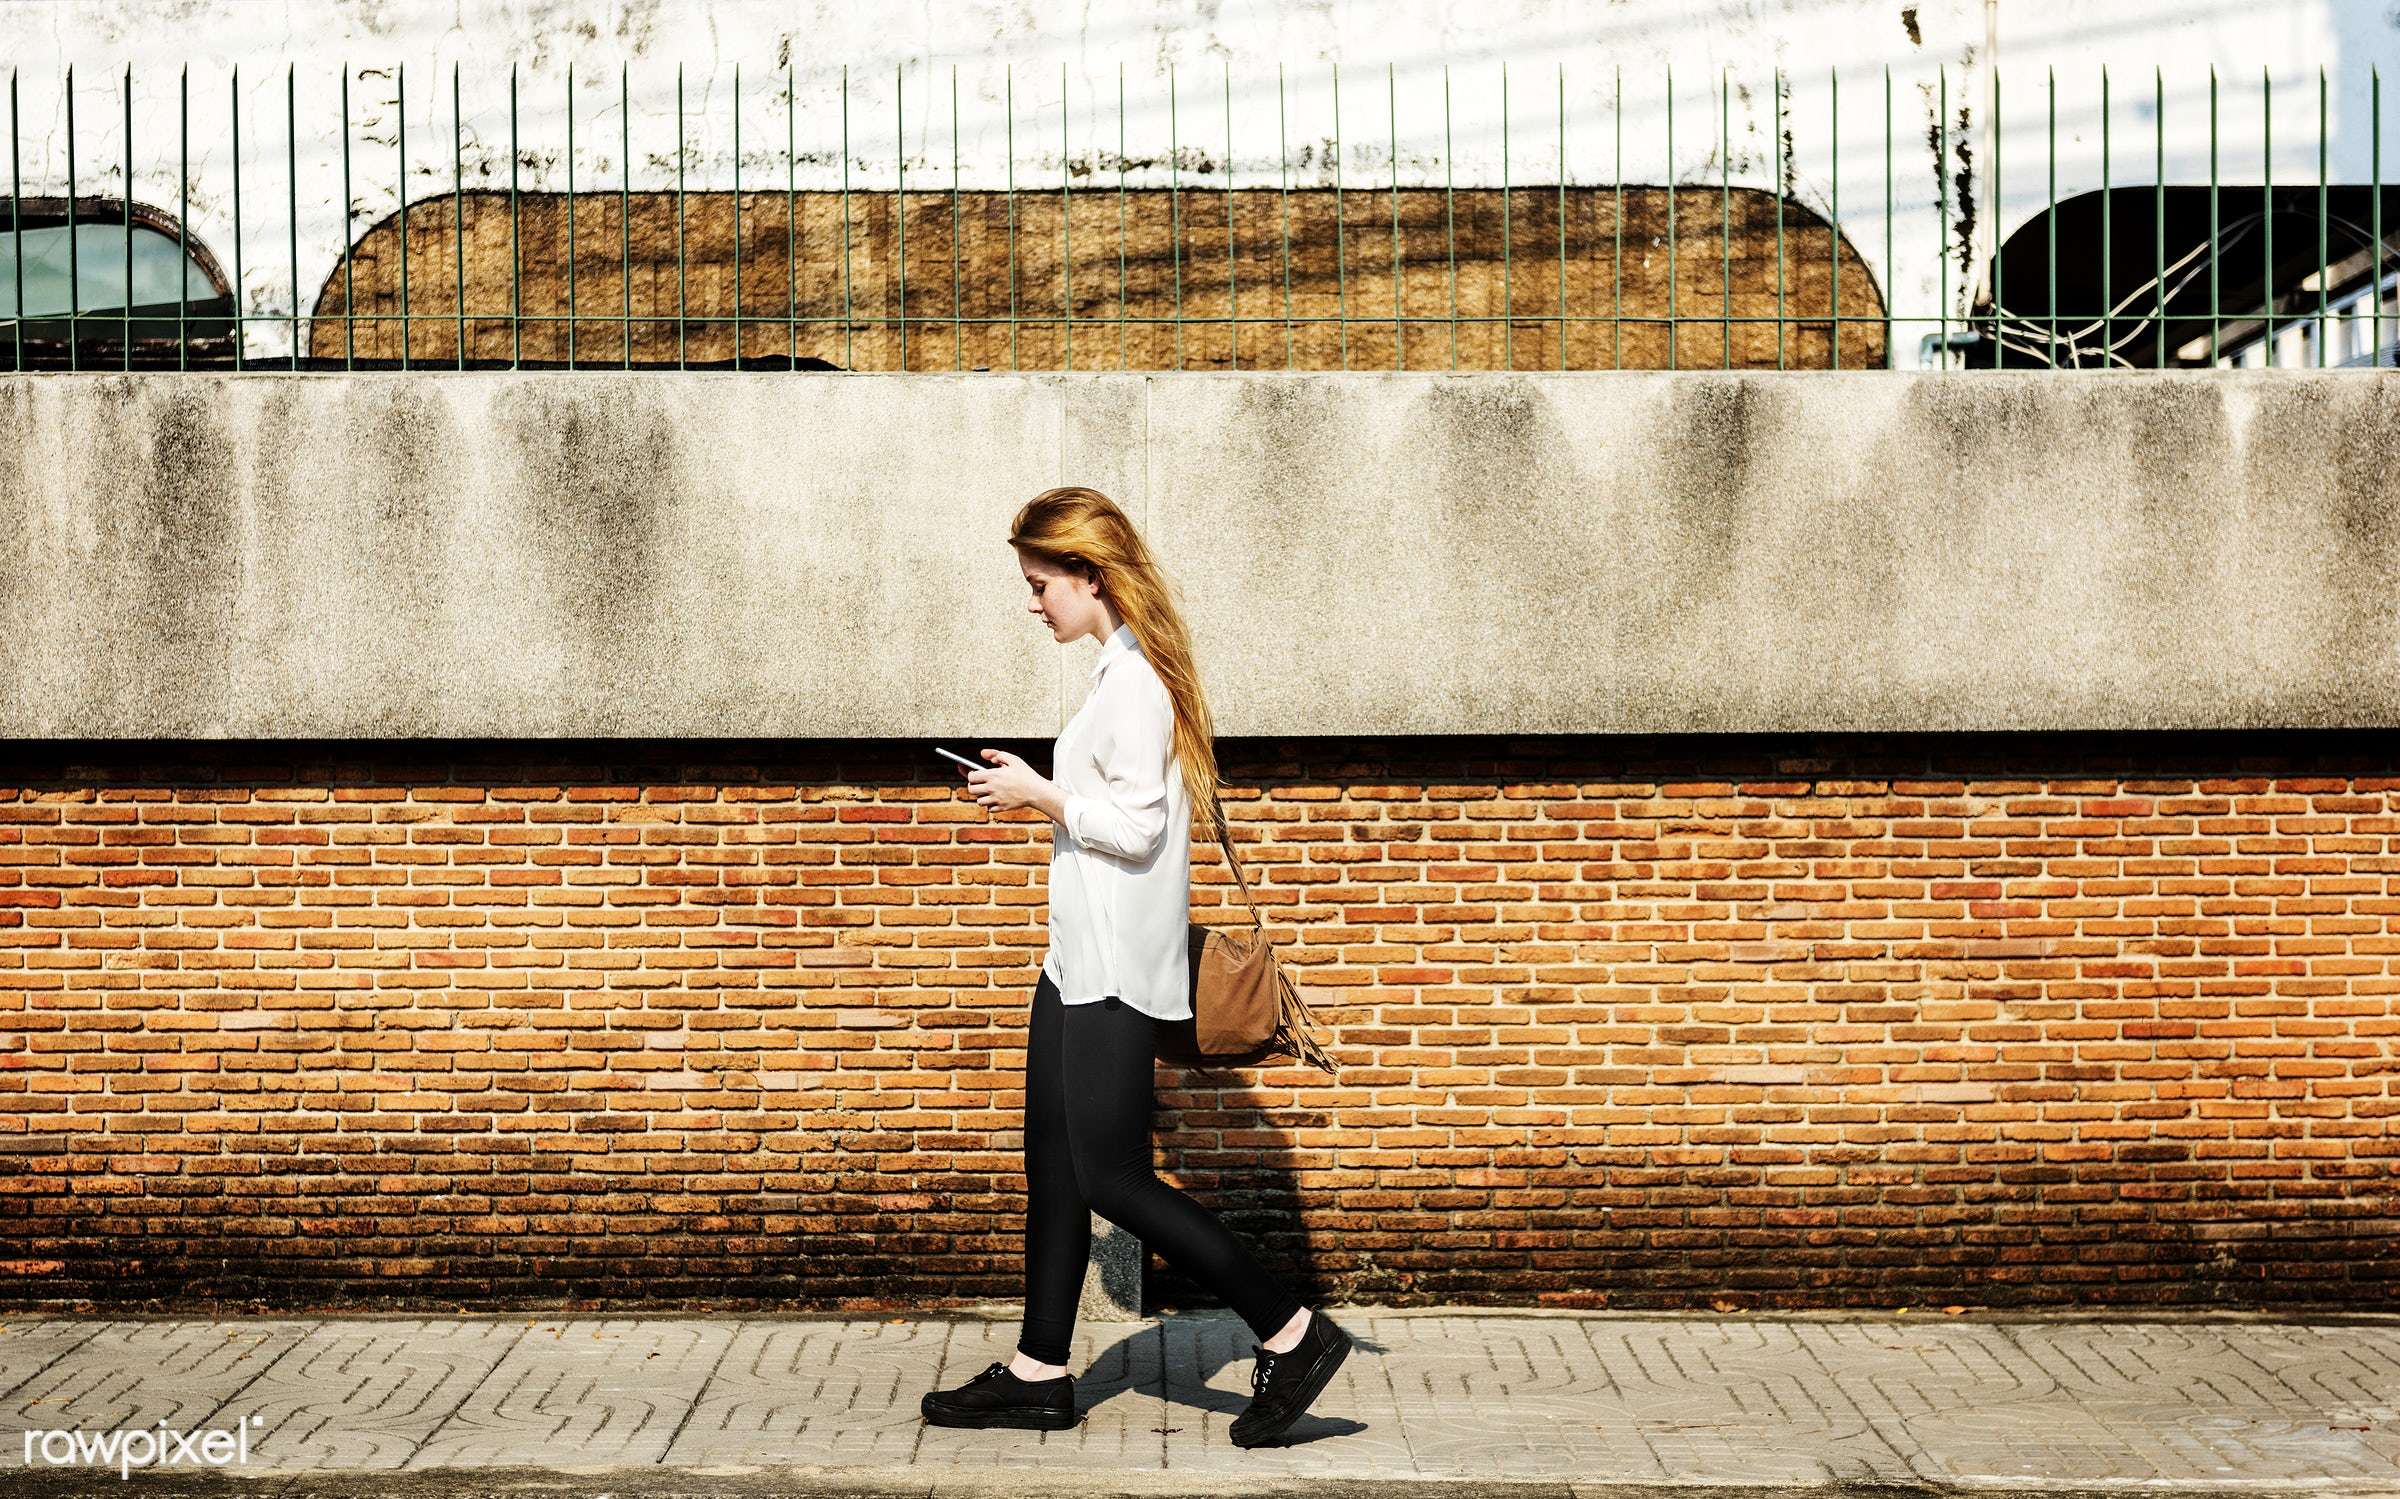 Browsing Social Media Walking Online Relax Concept - woman, alone, cellphone, cheerful, communication, connection, device,...